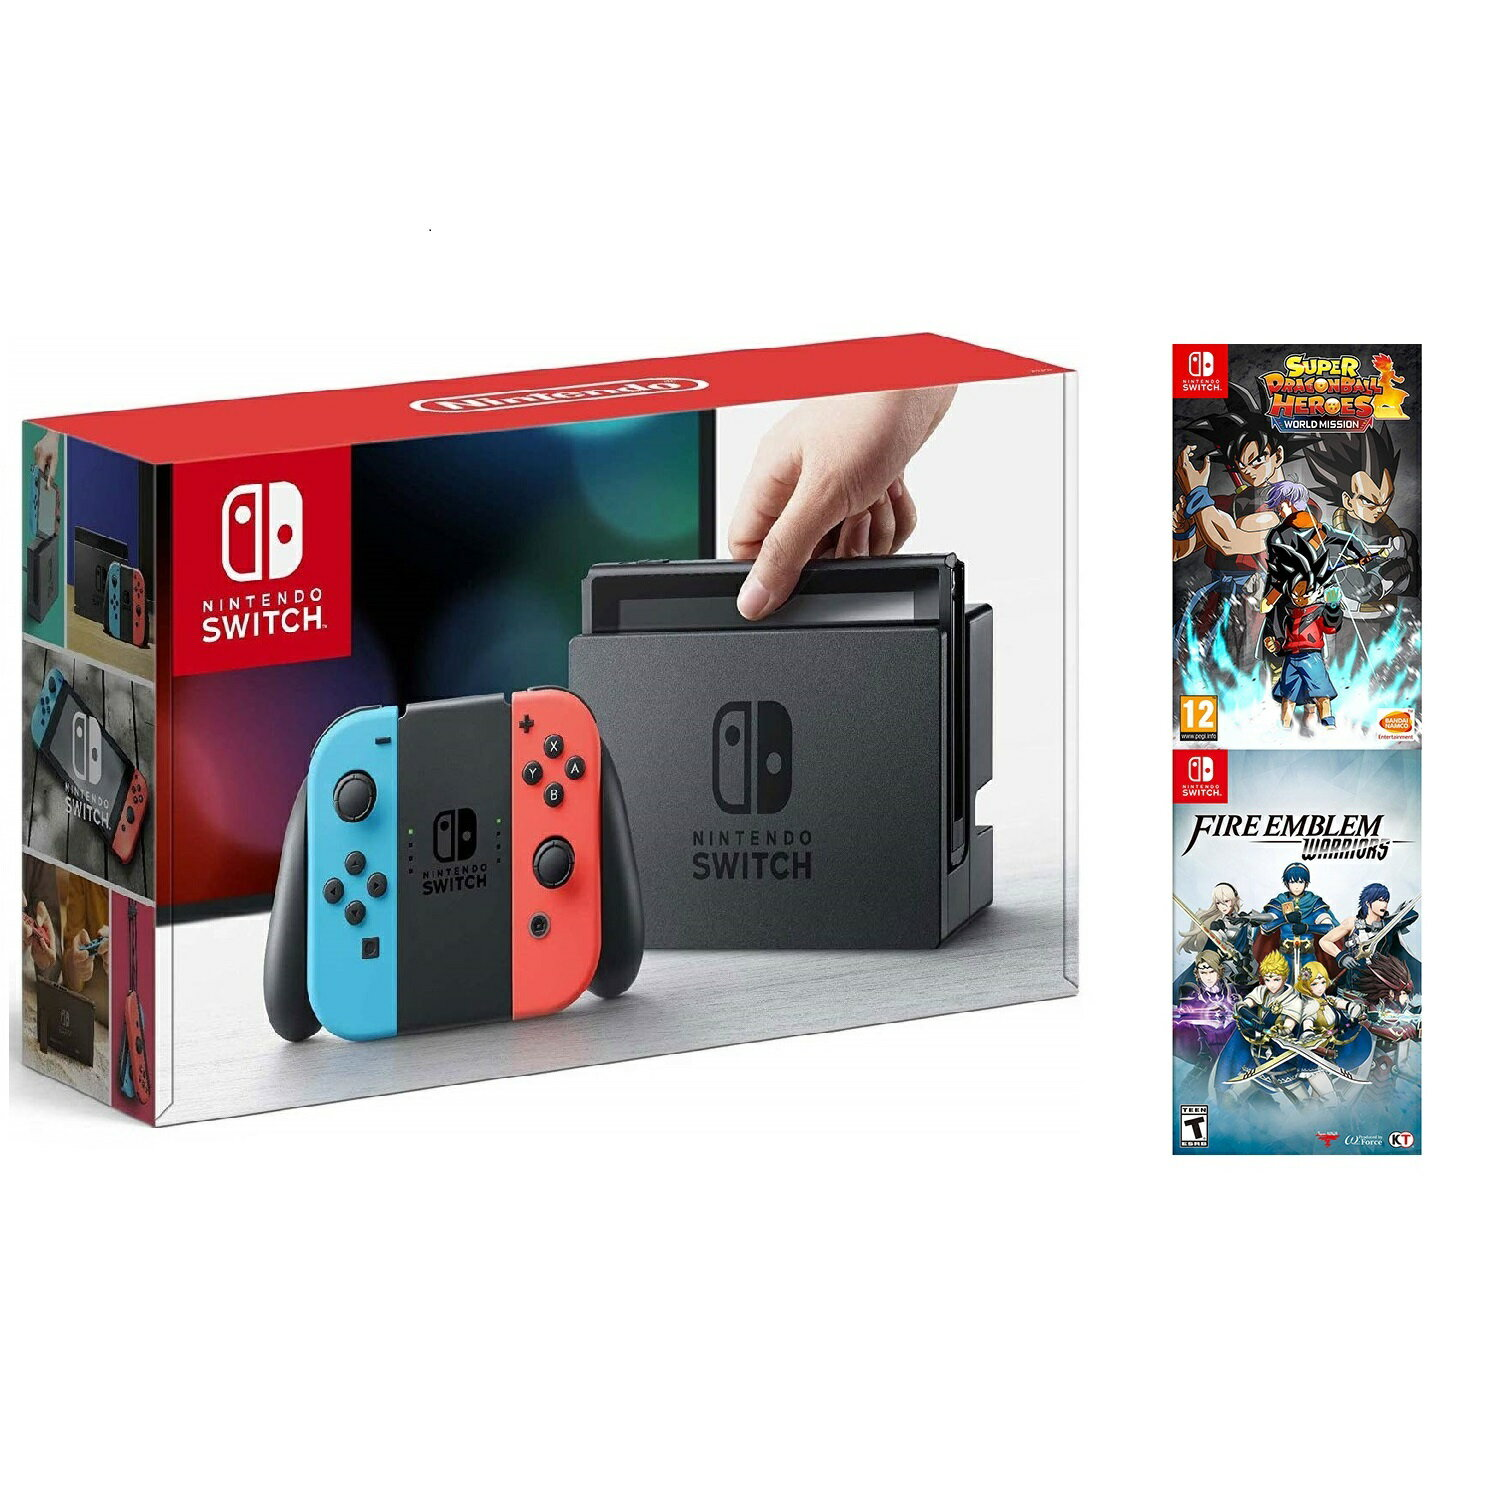 Nintendo Switch 32GB Neon Console with Fire Emblem Warriors & Dragon Ball Heros Bundle